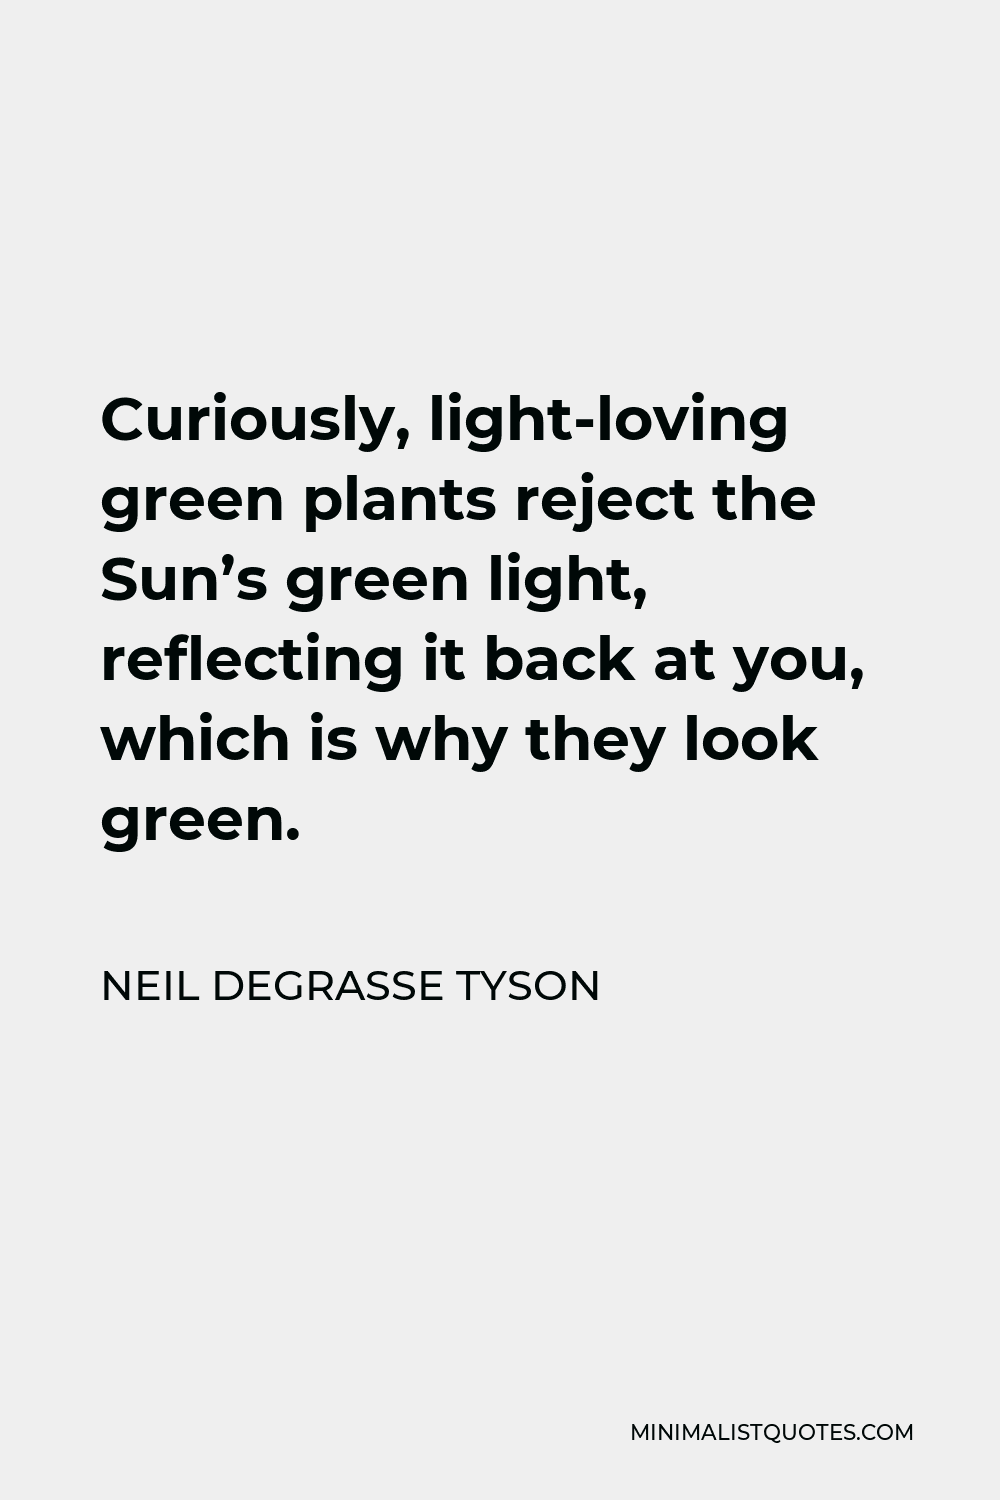 Neil deGrasse Tyson Quote - Curiously, light-loving green plants reject the Sun's green light, reflecting it back at you, which is why they look green.